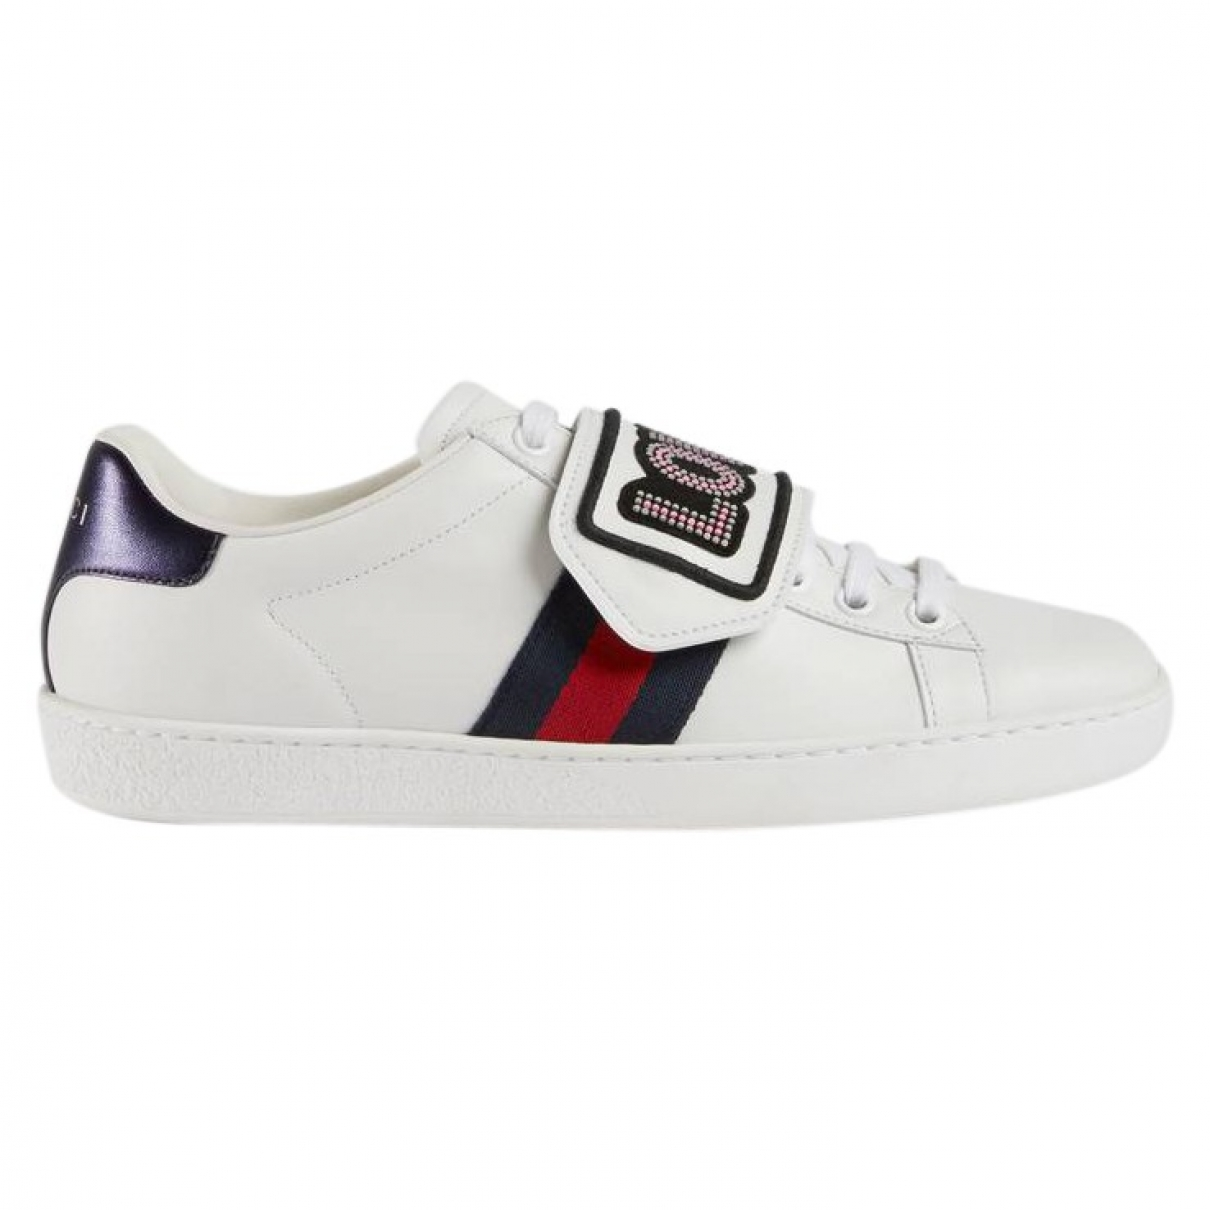 Gucci Ace Sneakers in  Weiss Leder